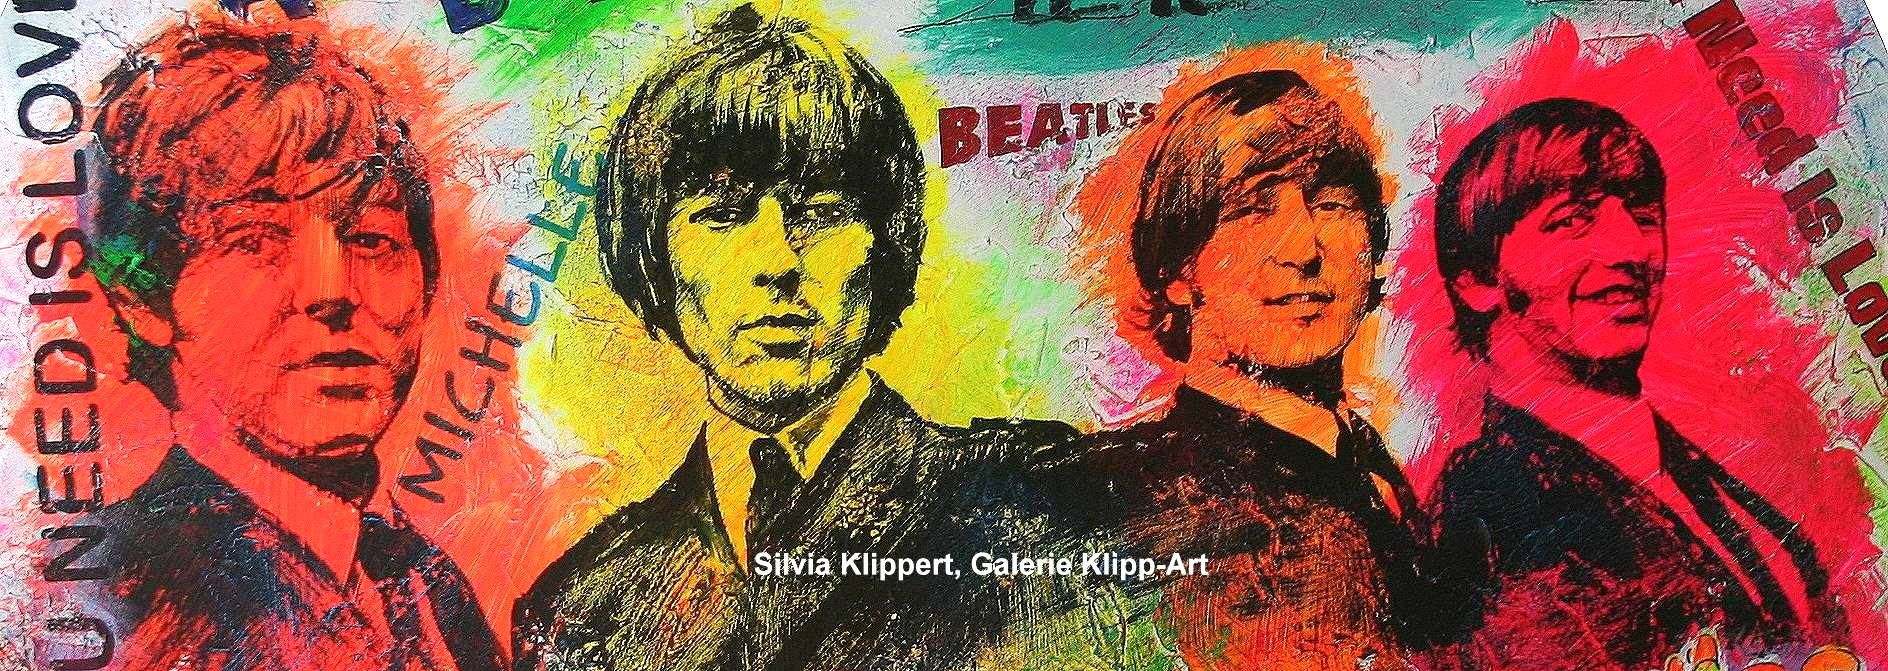 Pop art Stil Beatles